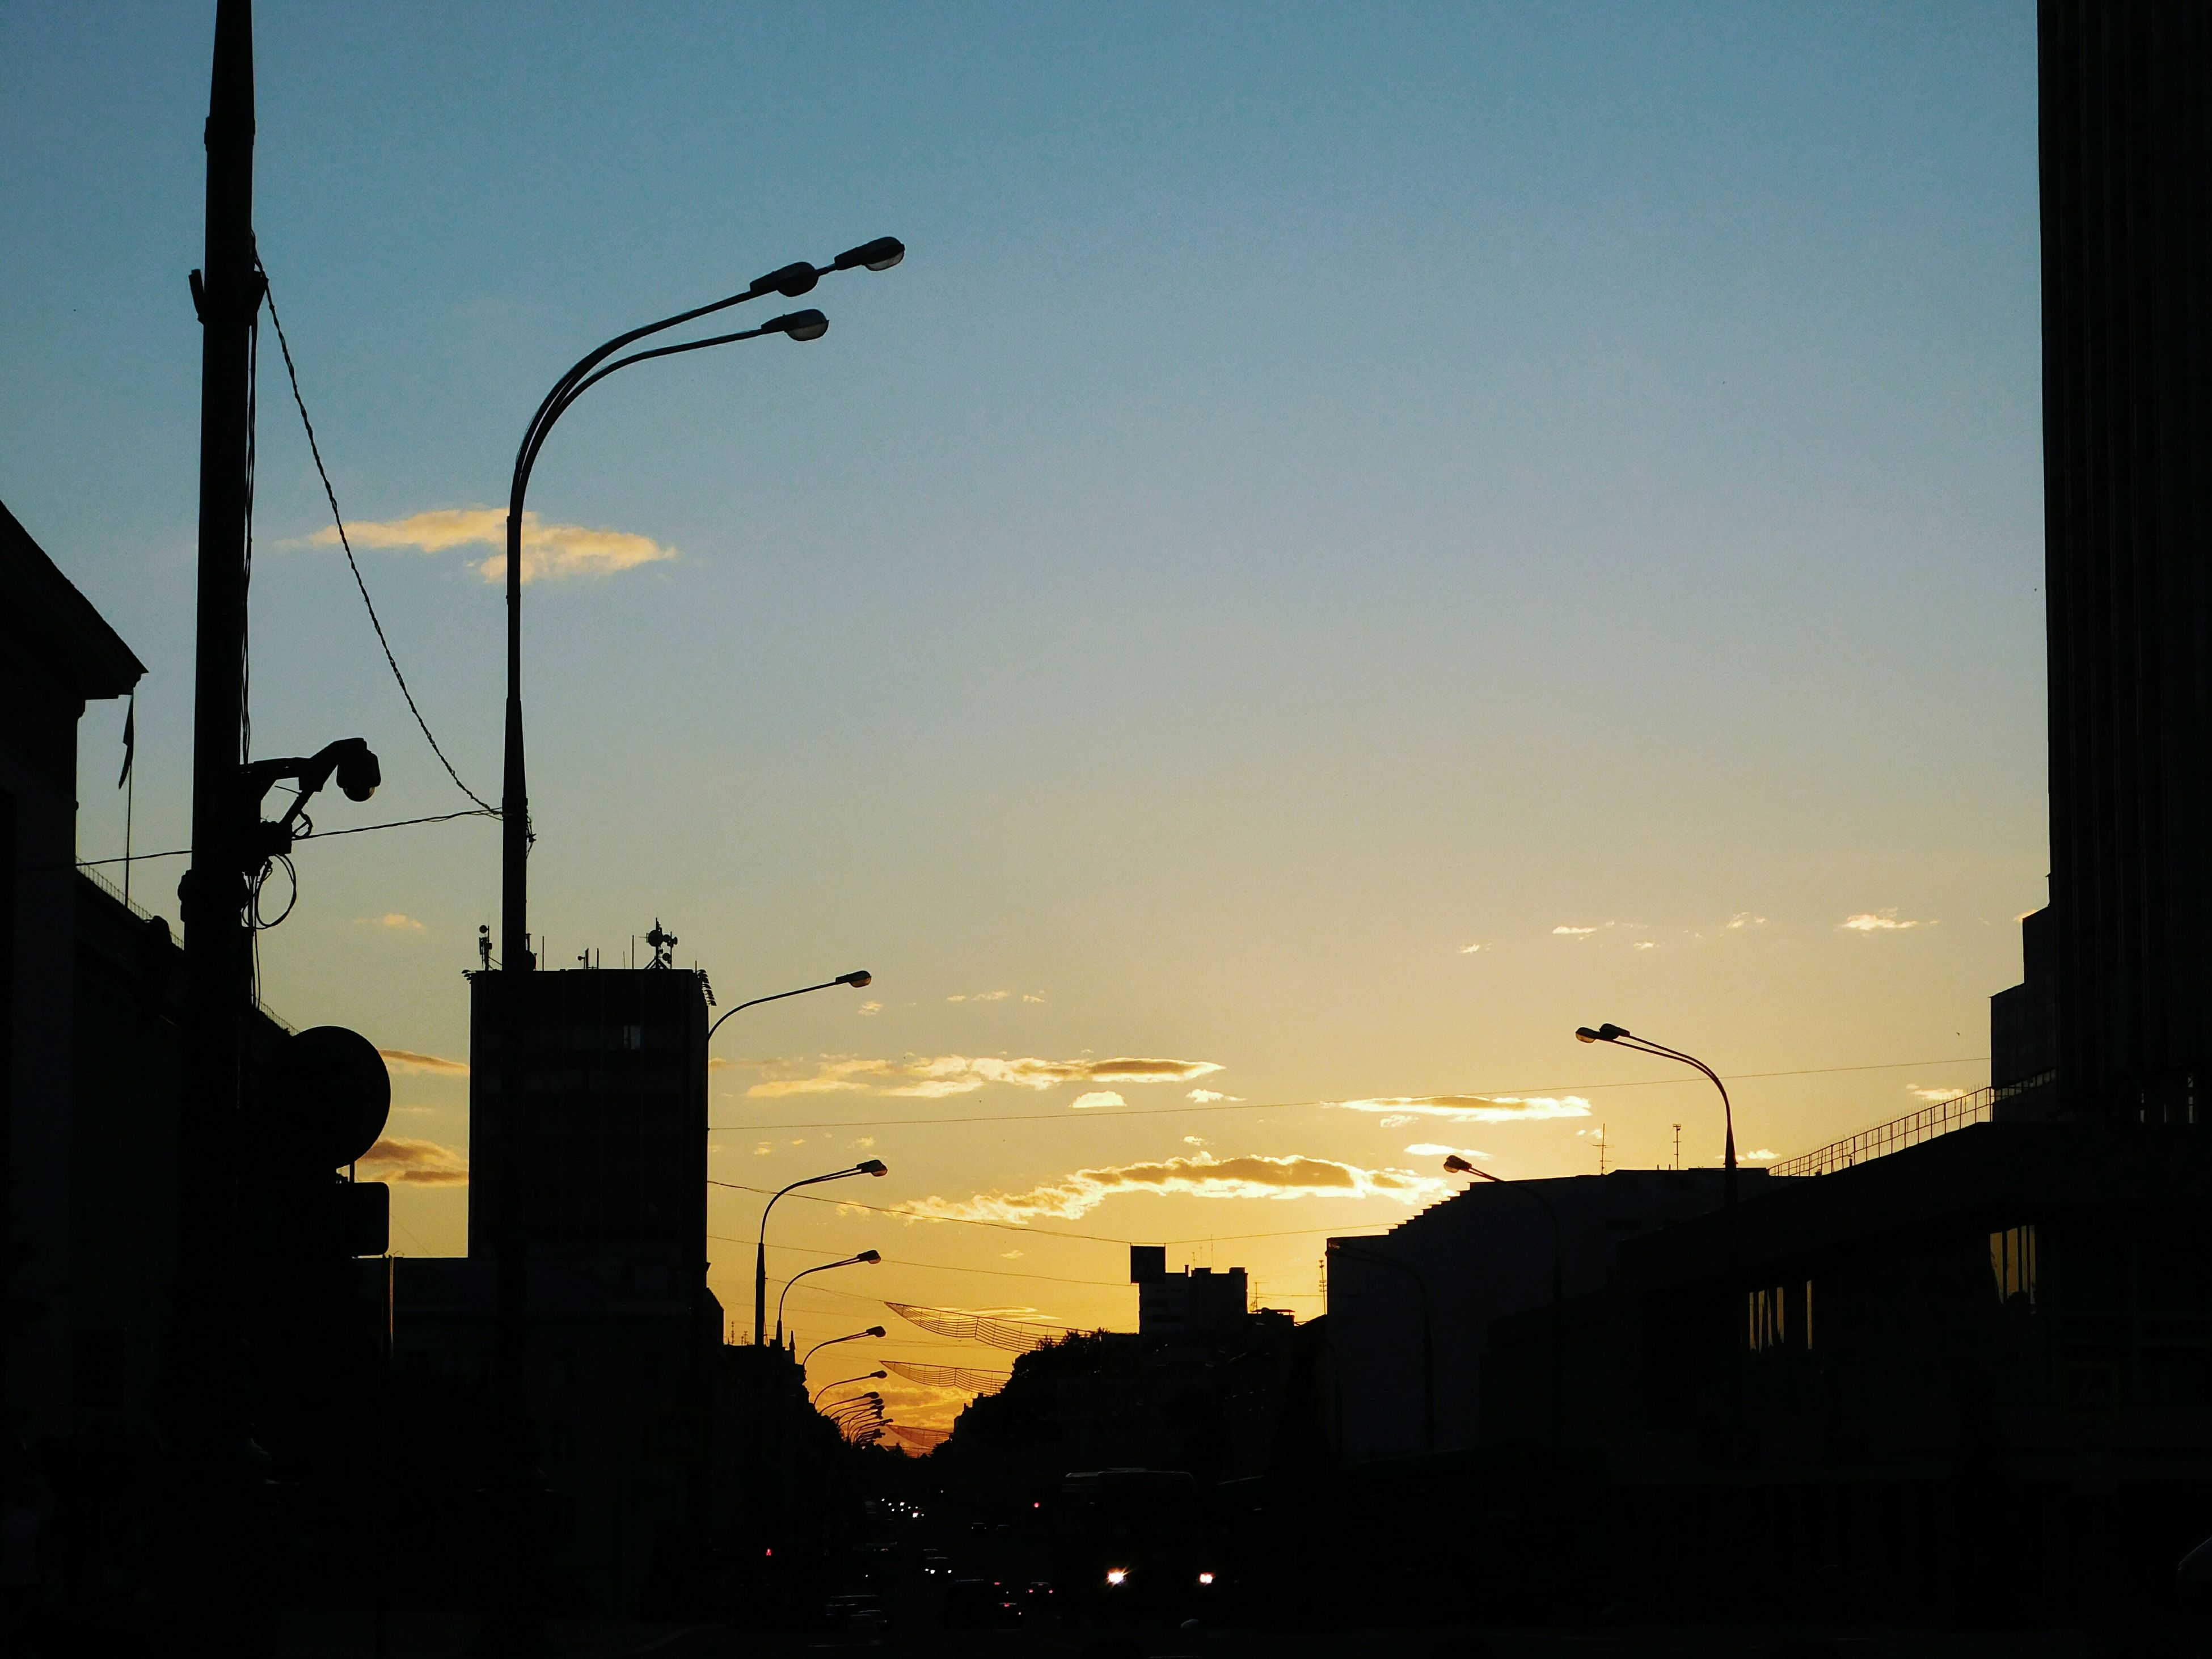 sunset, silhouette, architecture, built structure, building exterior, street light, no people, city, sky, outdoors, nature, clear sky, beauty in nature, bird, cityscape